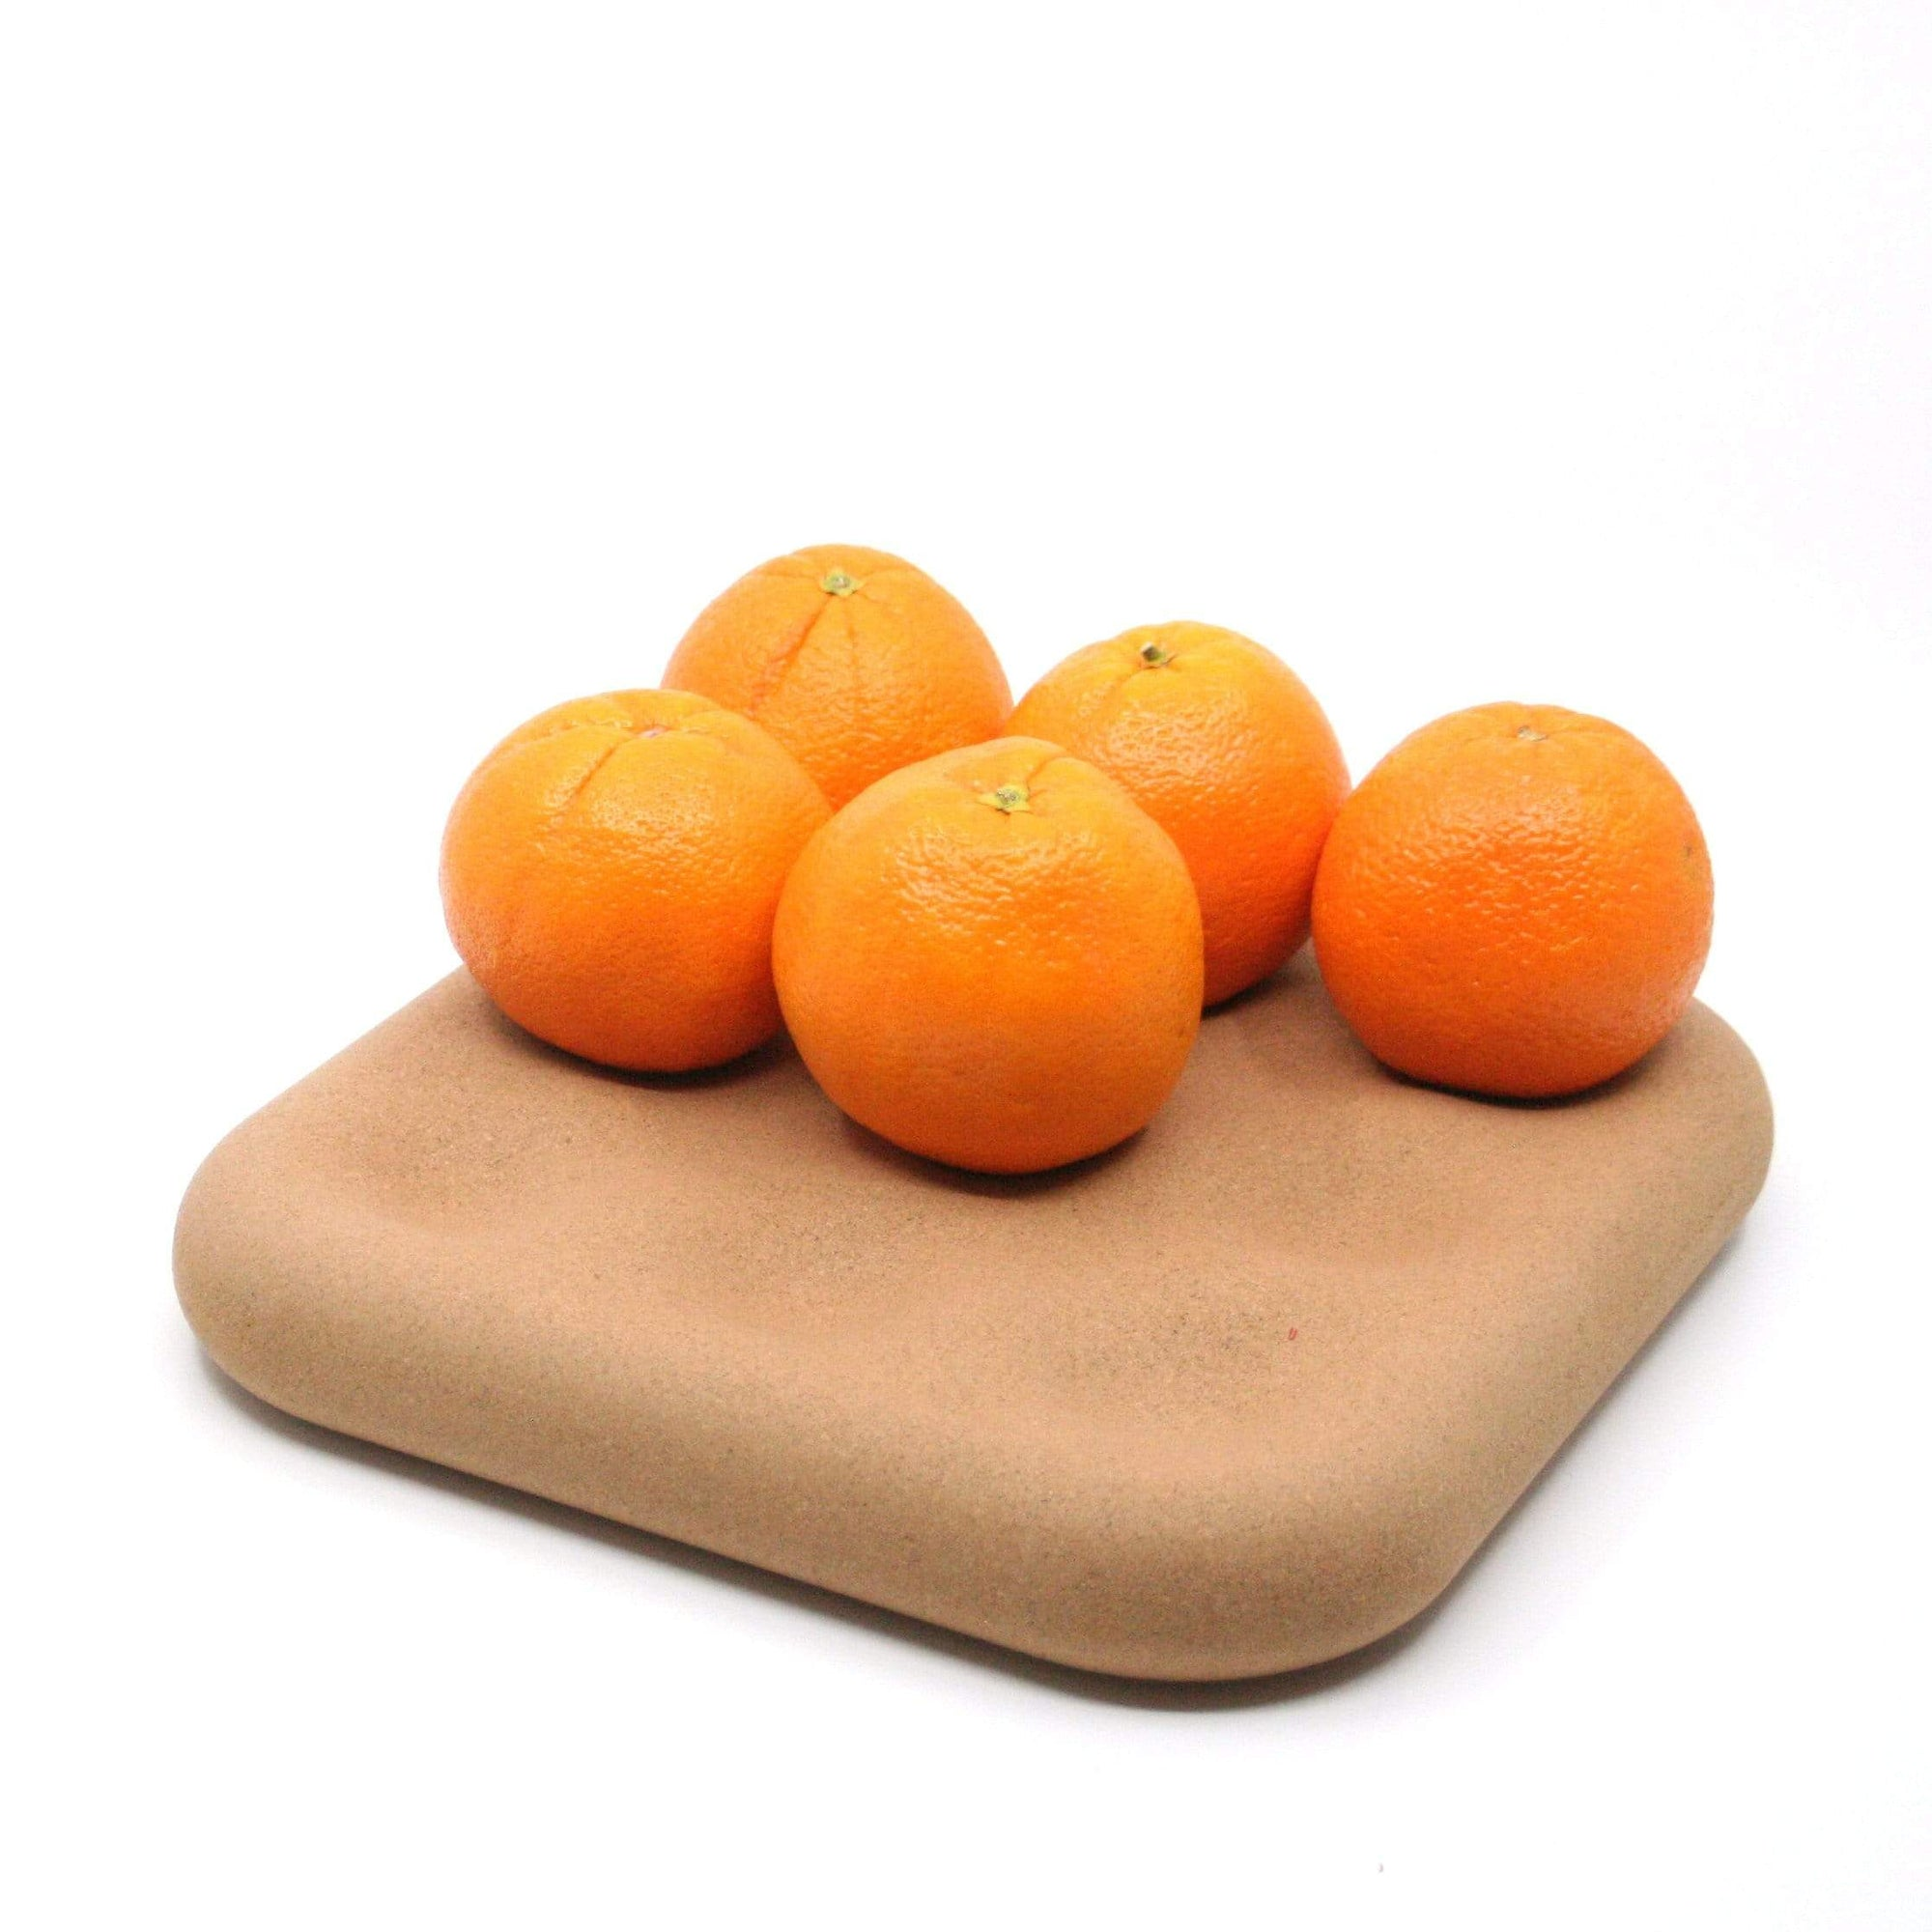 Space Ctrl Design Kitchen Organization Dimple Tray - Fruit Tray in Natural Cork Finish